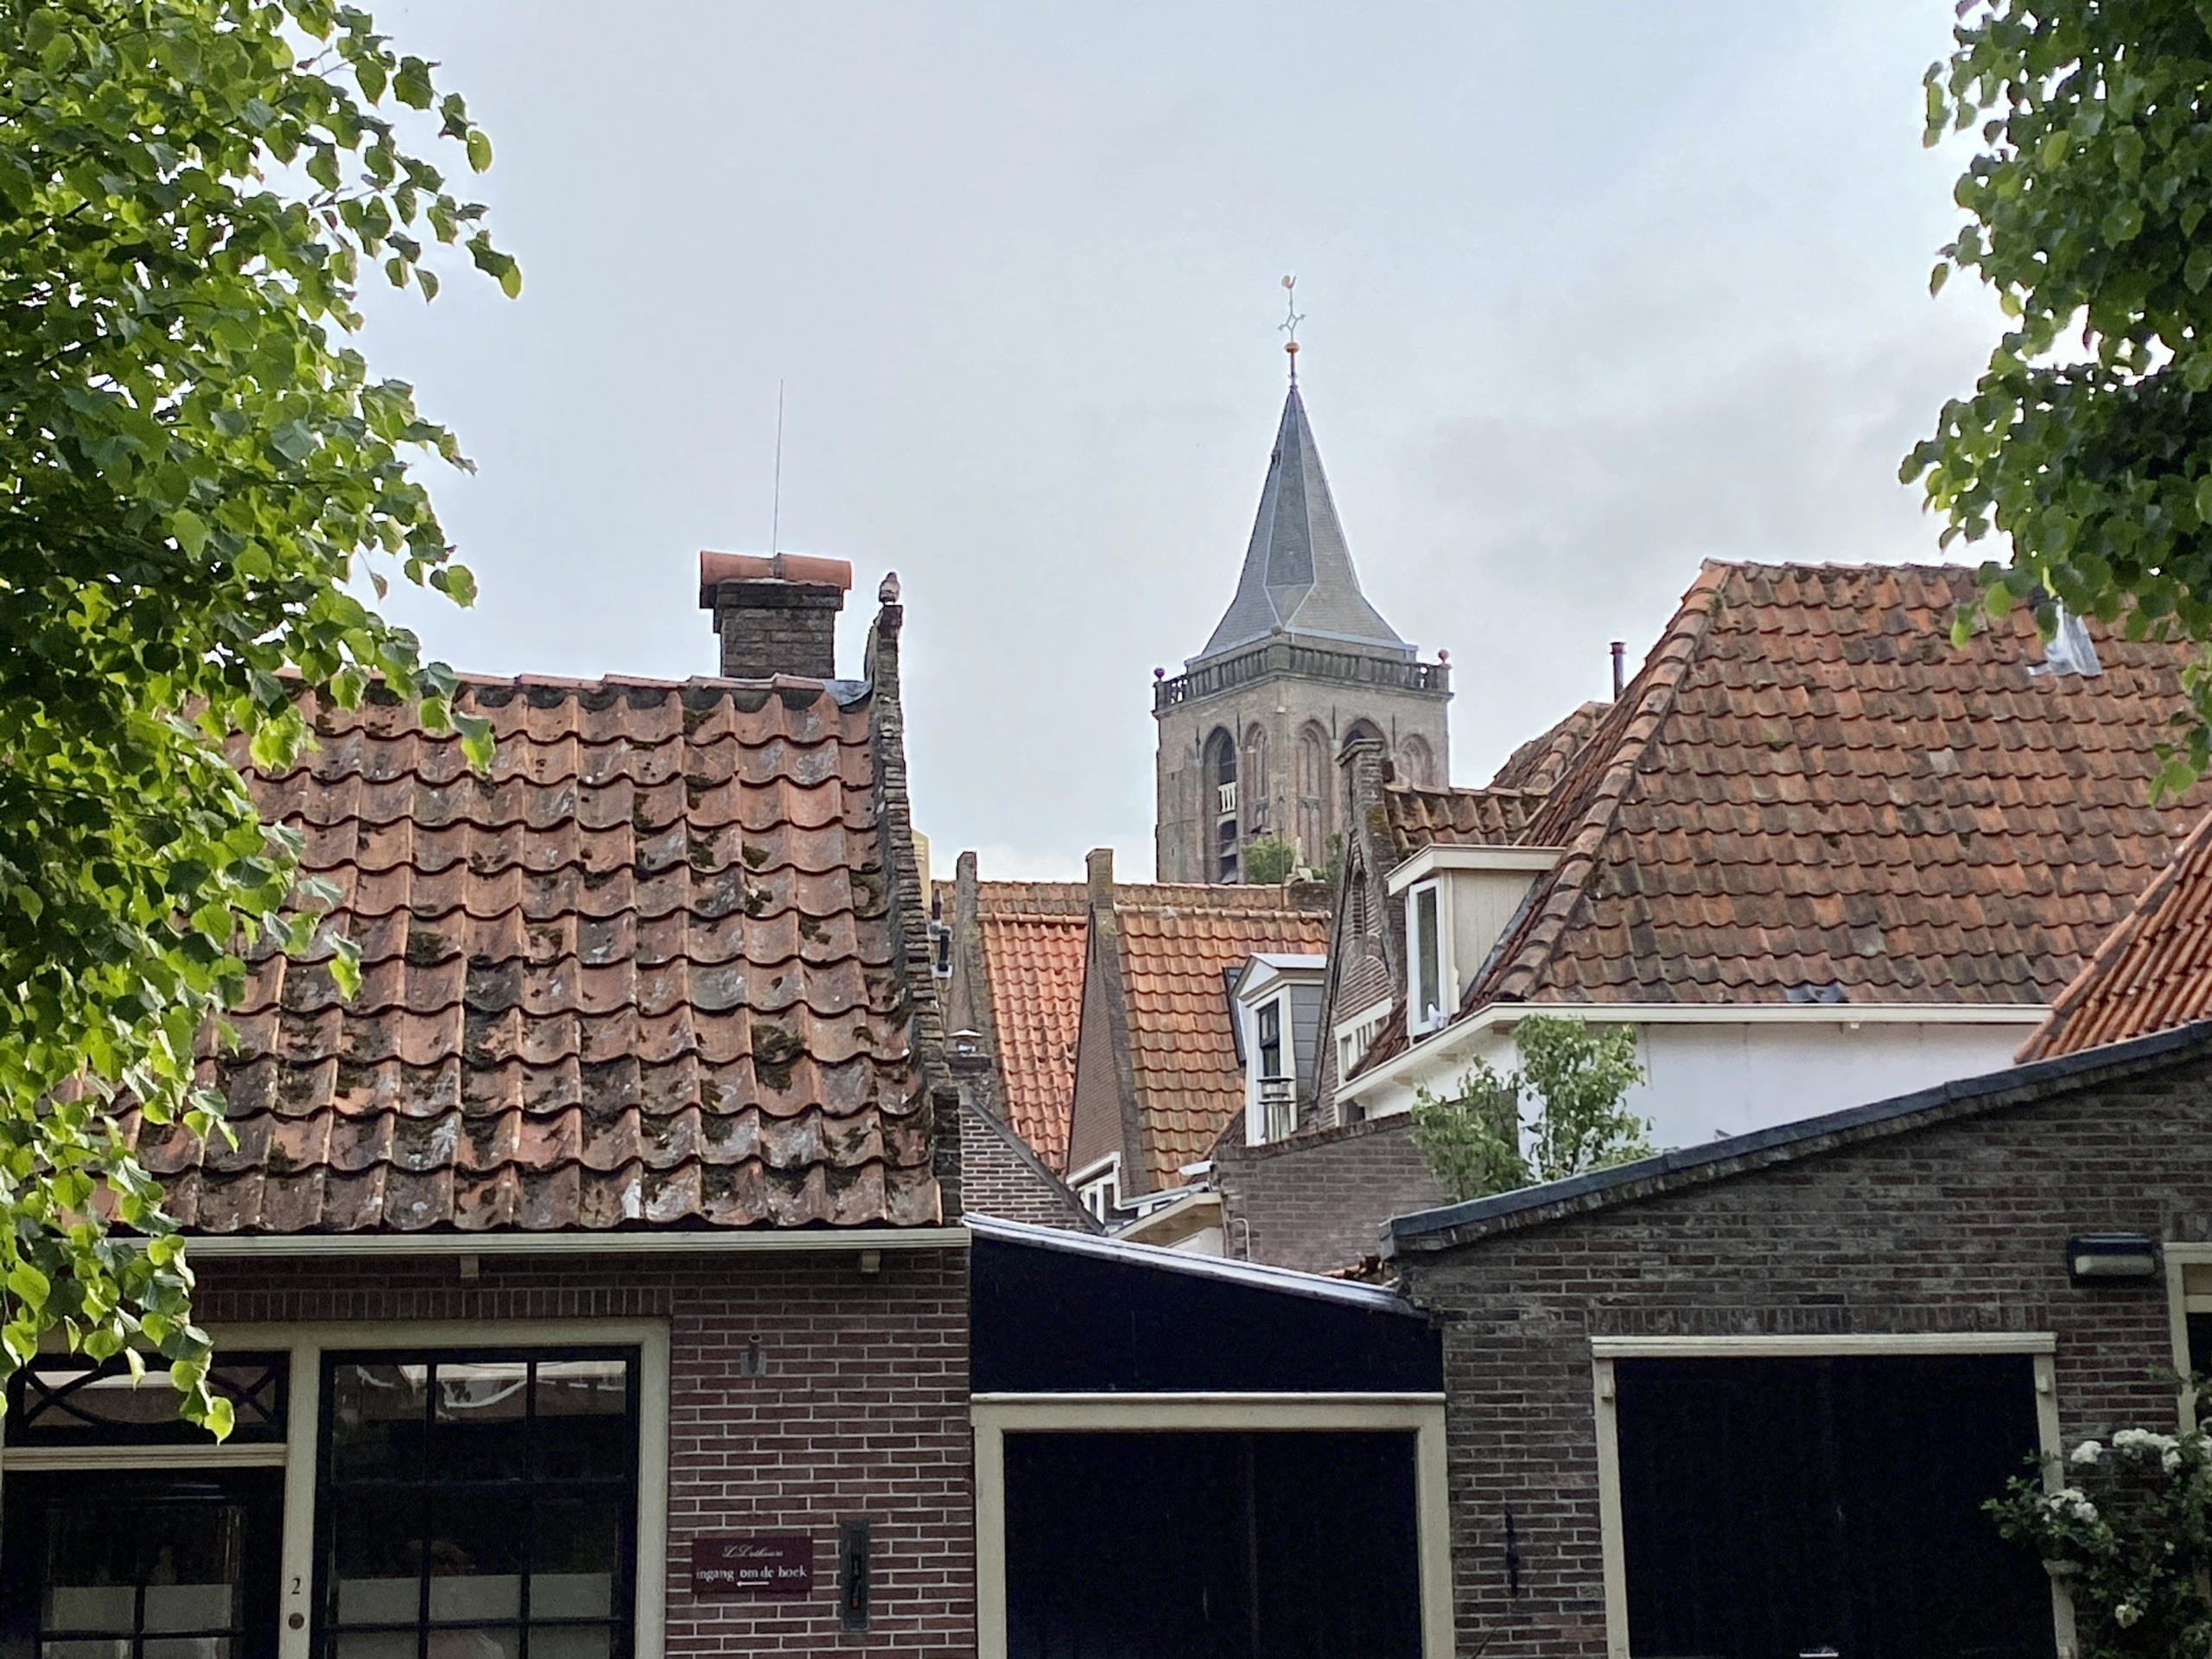 Monnickendam - Daytrip to Amsterdam's countryside